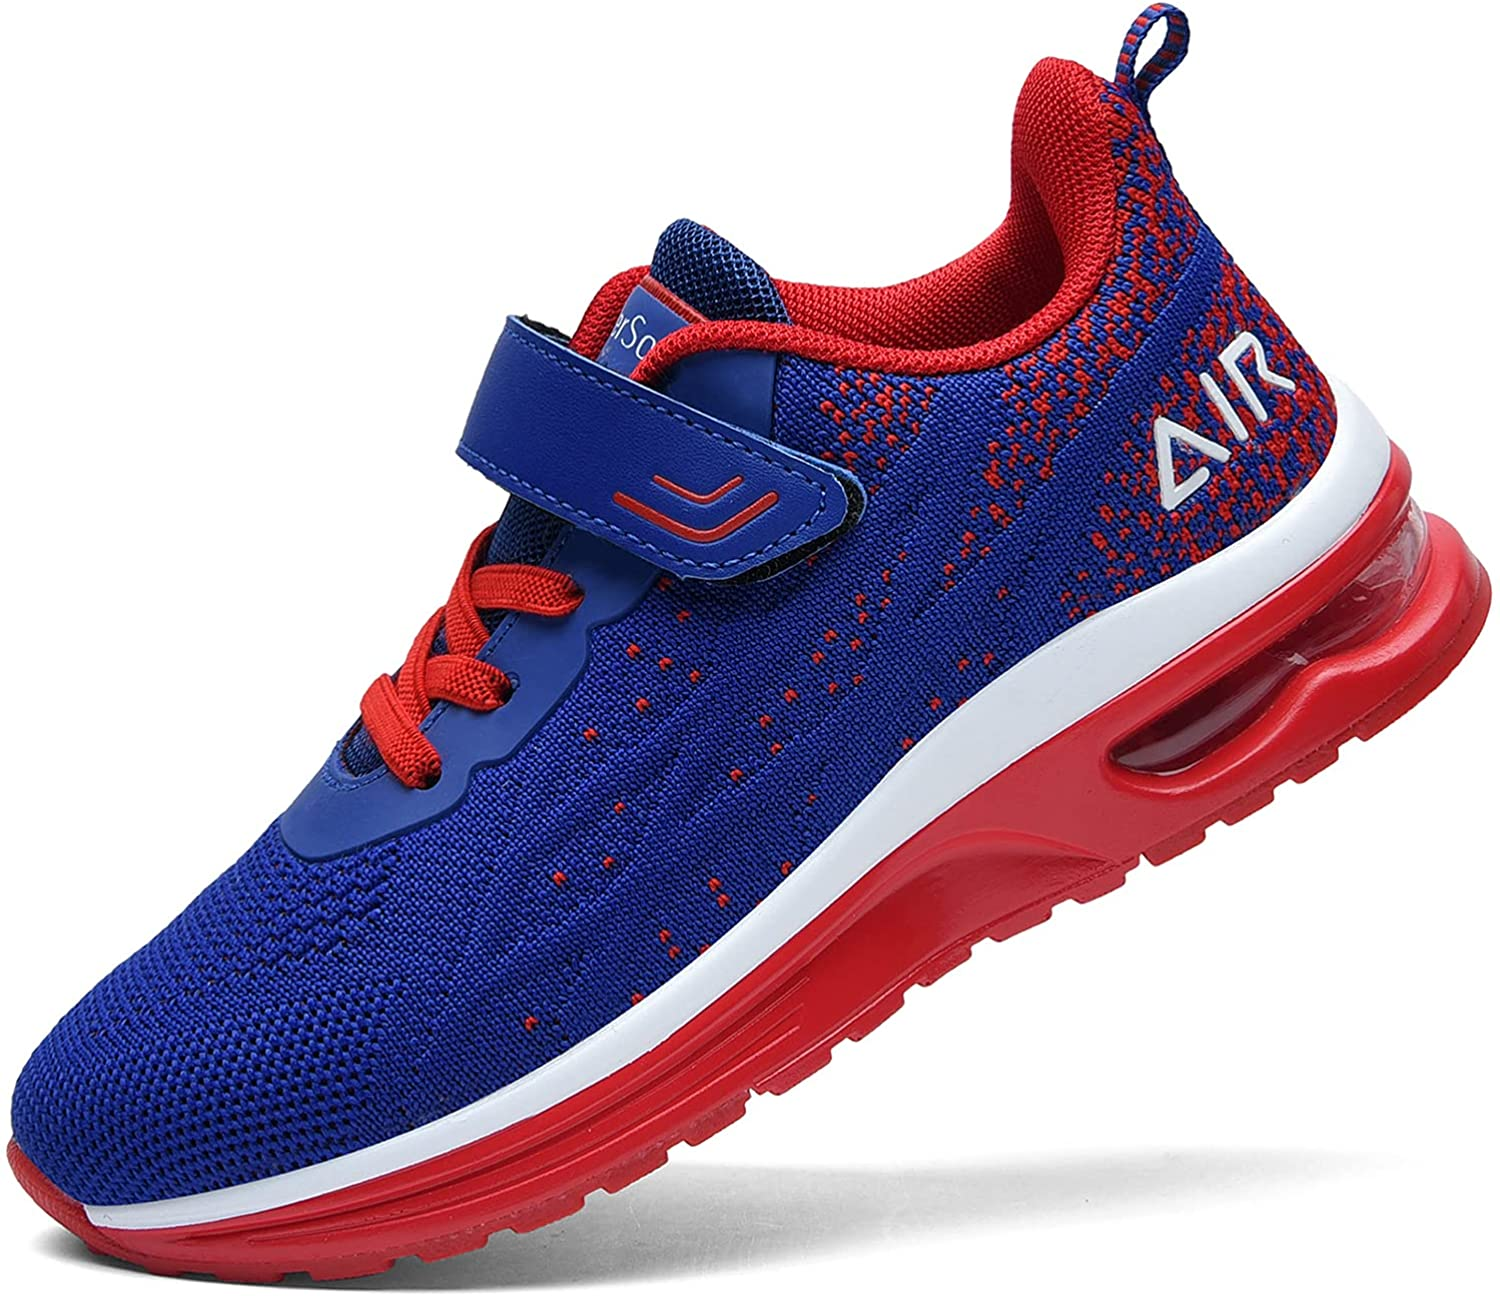 PERSOUL Air Shoes Regular dealer for Boys Girls Ath Children Sports Sales results No. 1 Kids Tennis